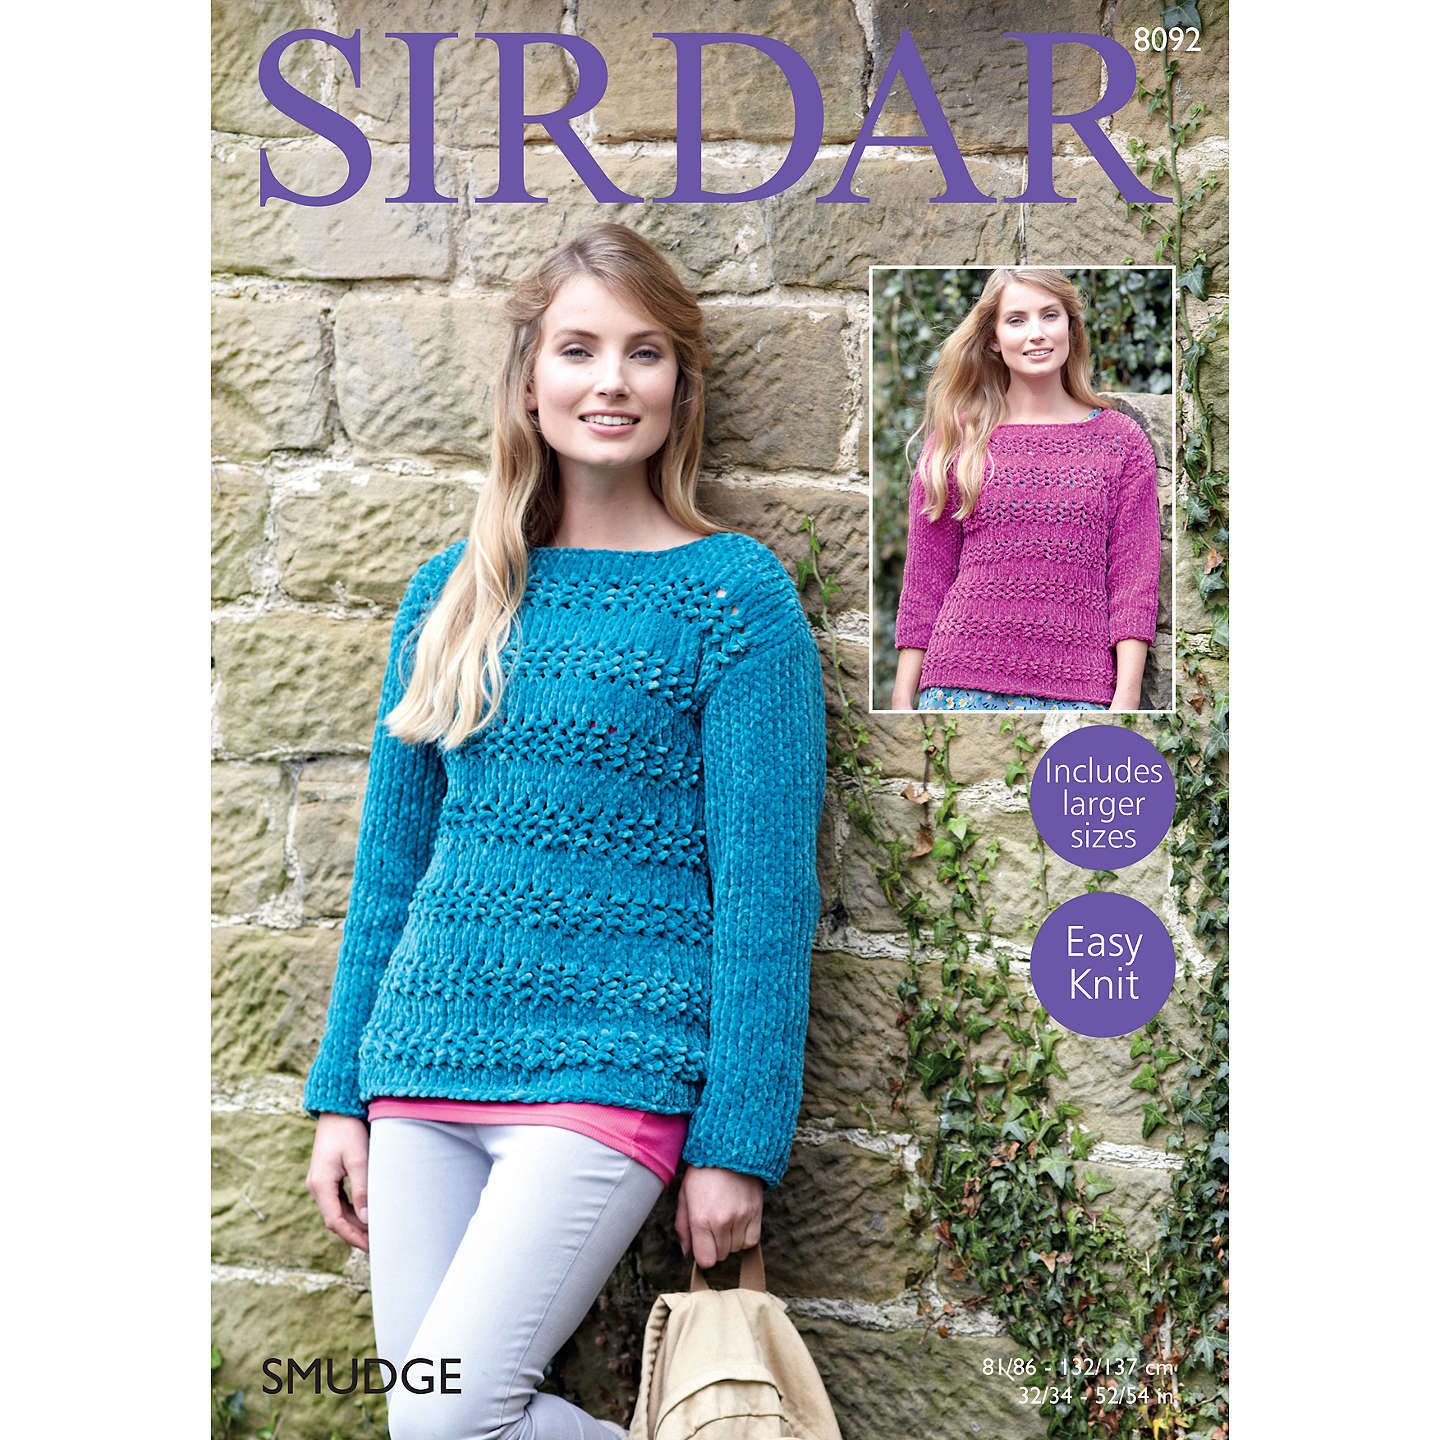 Sirdar Smudge Women\'s Jumper Knitting Pattern, 8092 at John Lewis